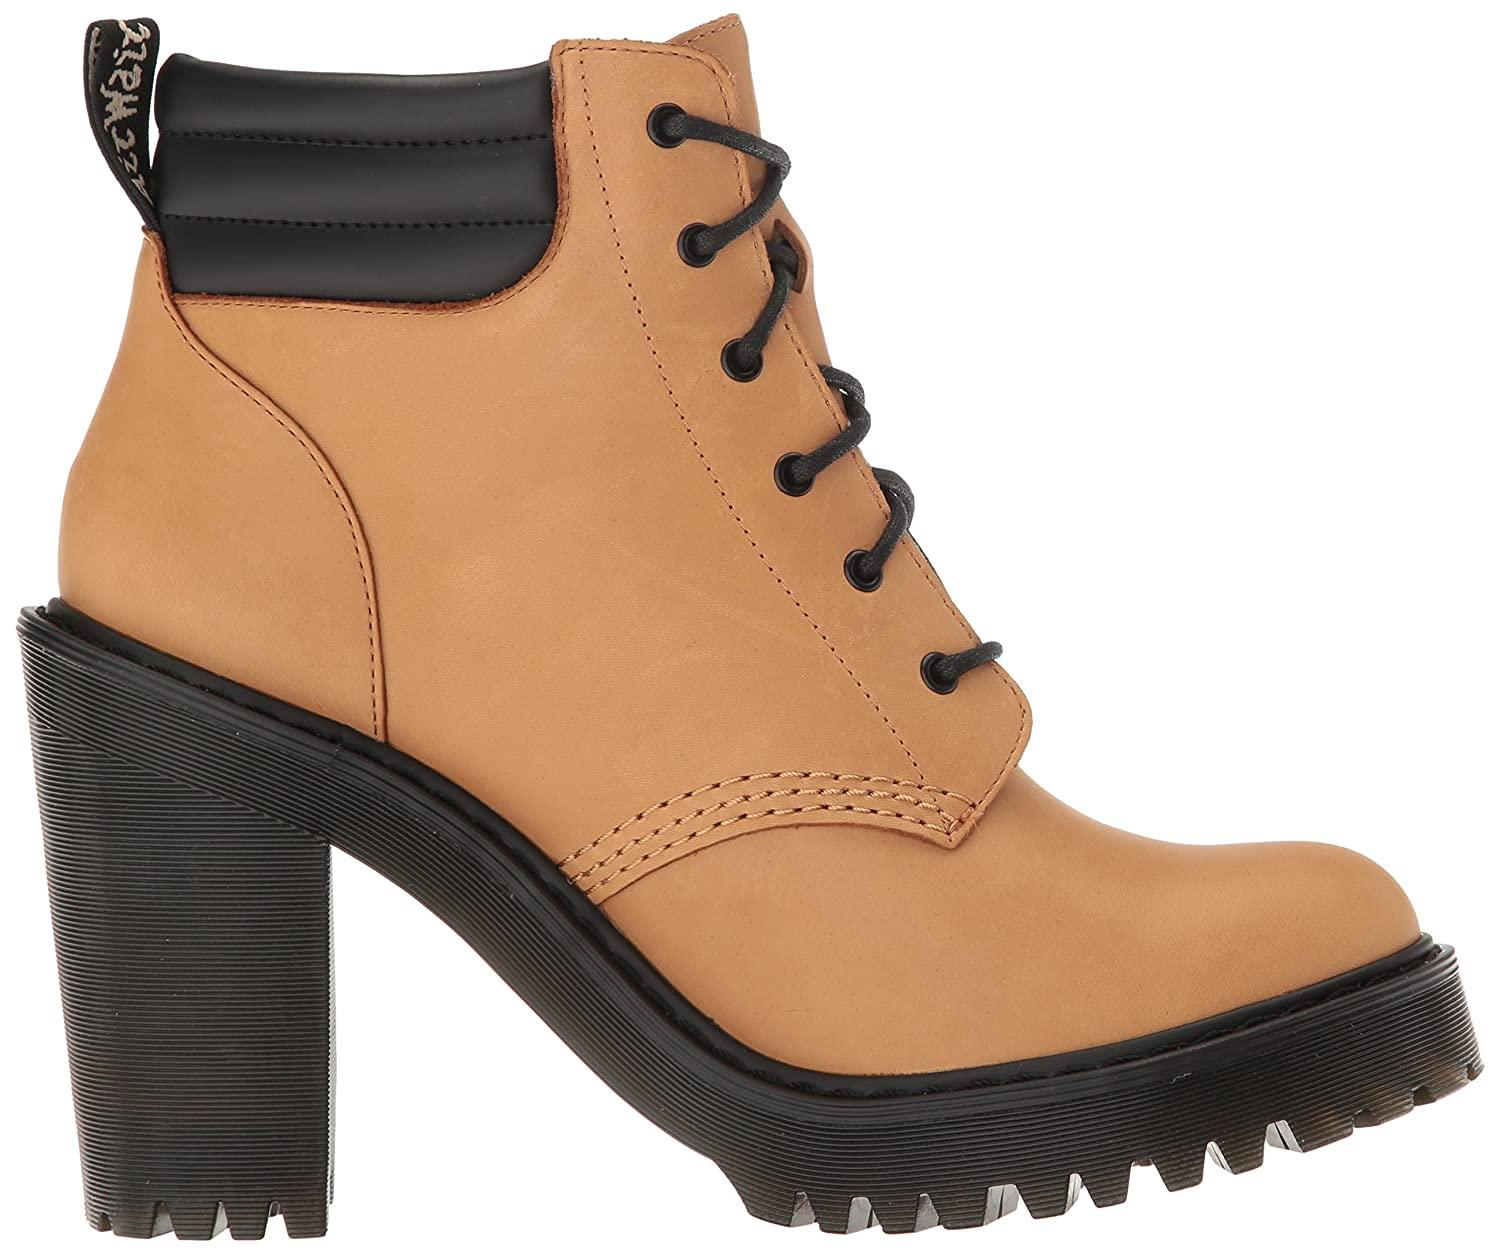 Dr Marten Persephone Lace Up Ankle Boot Tan Leather: Amazon